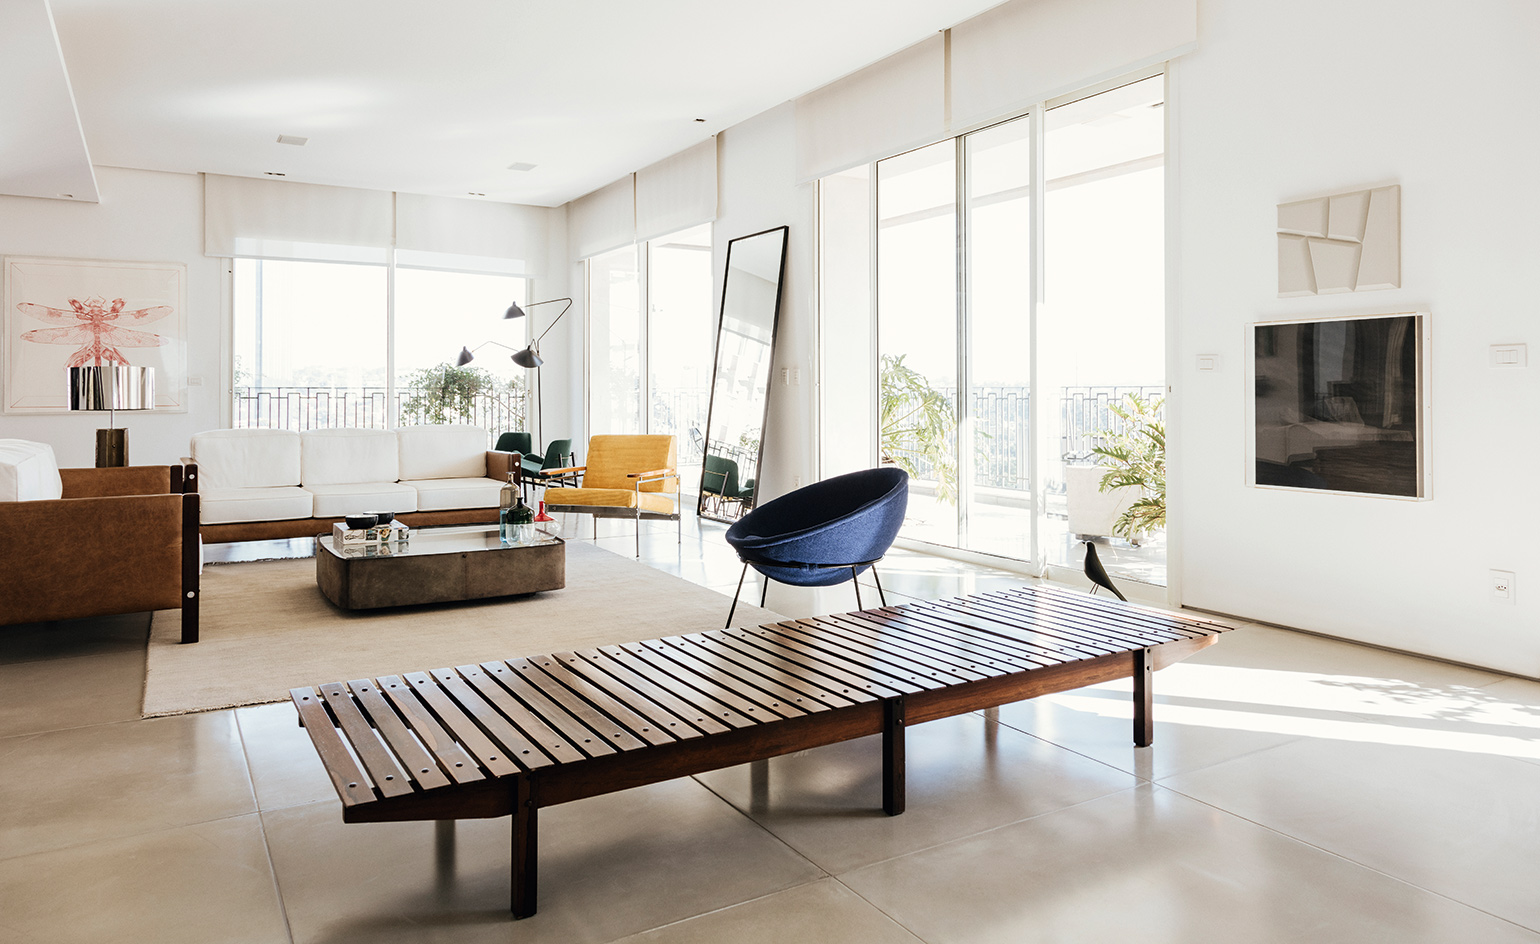 Inside carlos jereissati filho 39 s midcentury apartment for Local interior designers